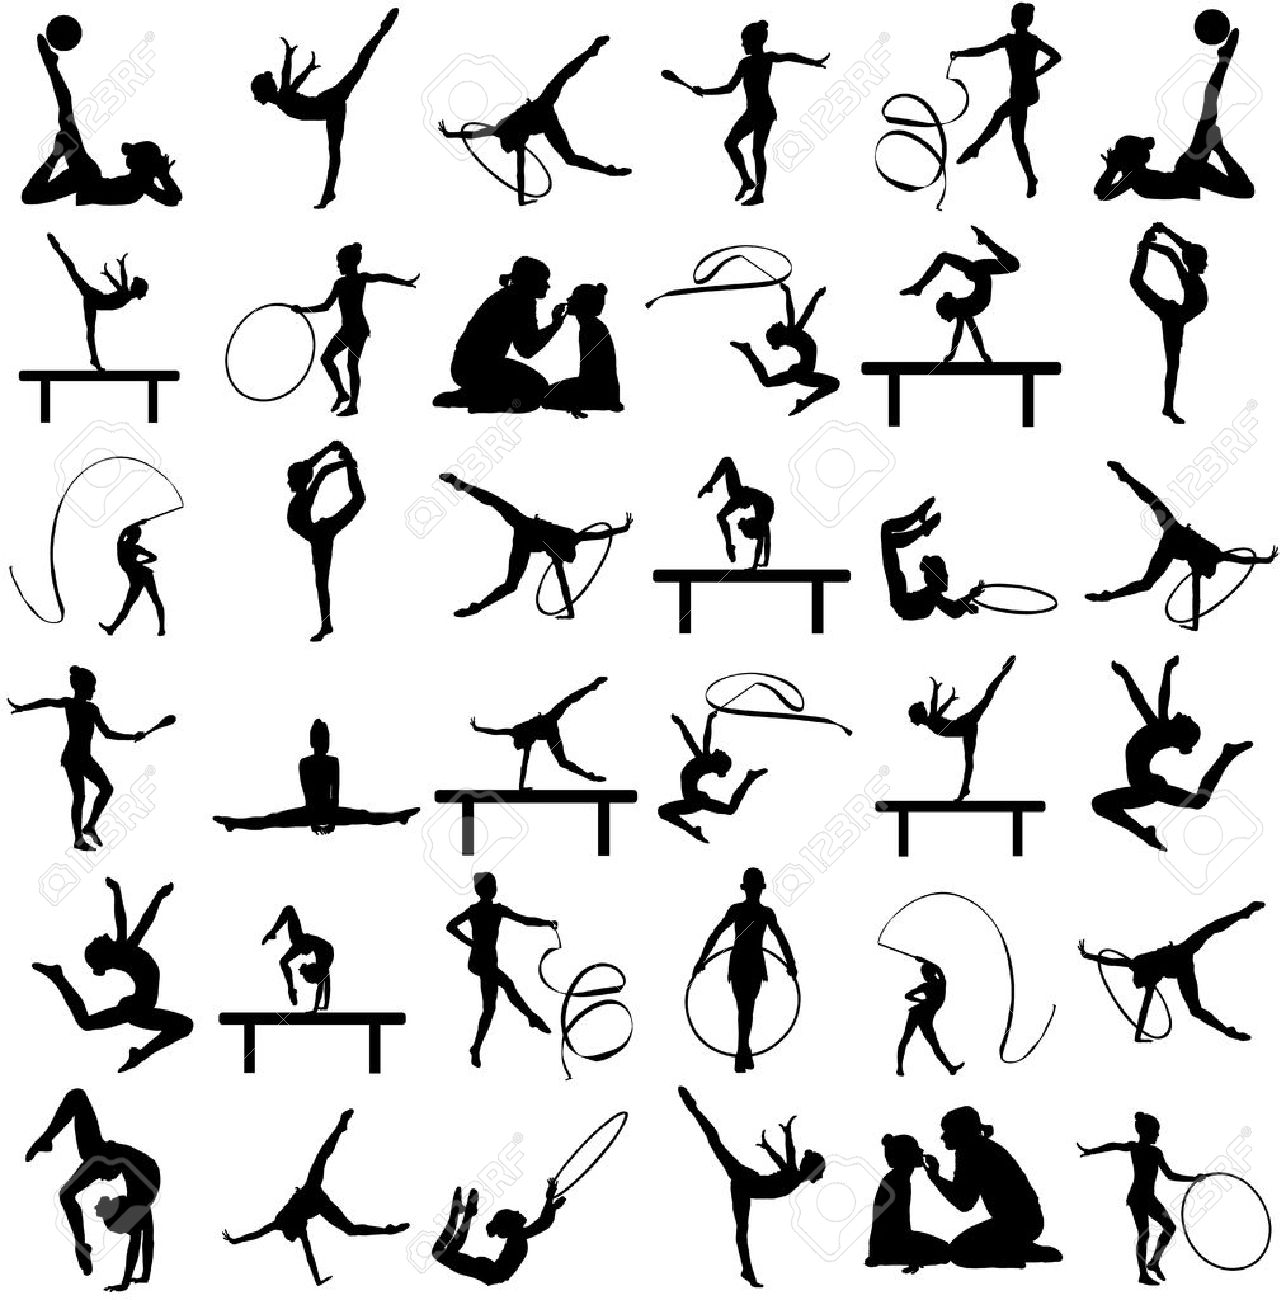 Athlete woman in gym exercise. Ballet girl vector figure isolated on white background. Black silhouette illustration of gymnastic woman. Rhythmic Gymnastics vector silhouette big group. - 71066666